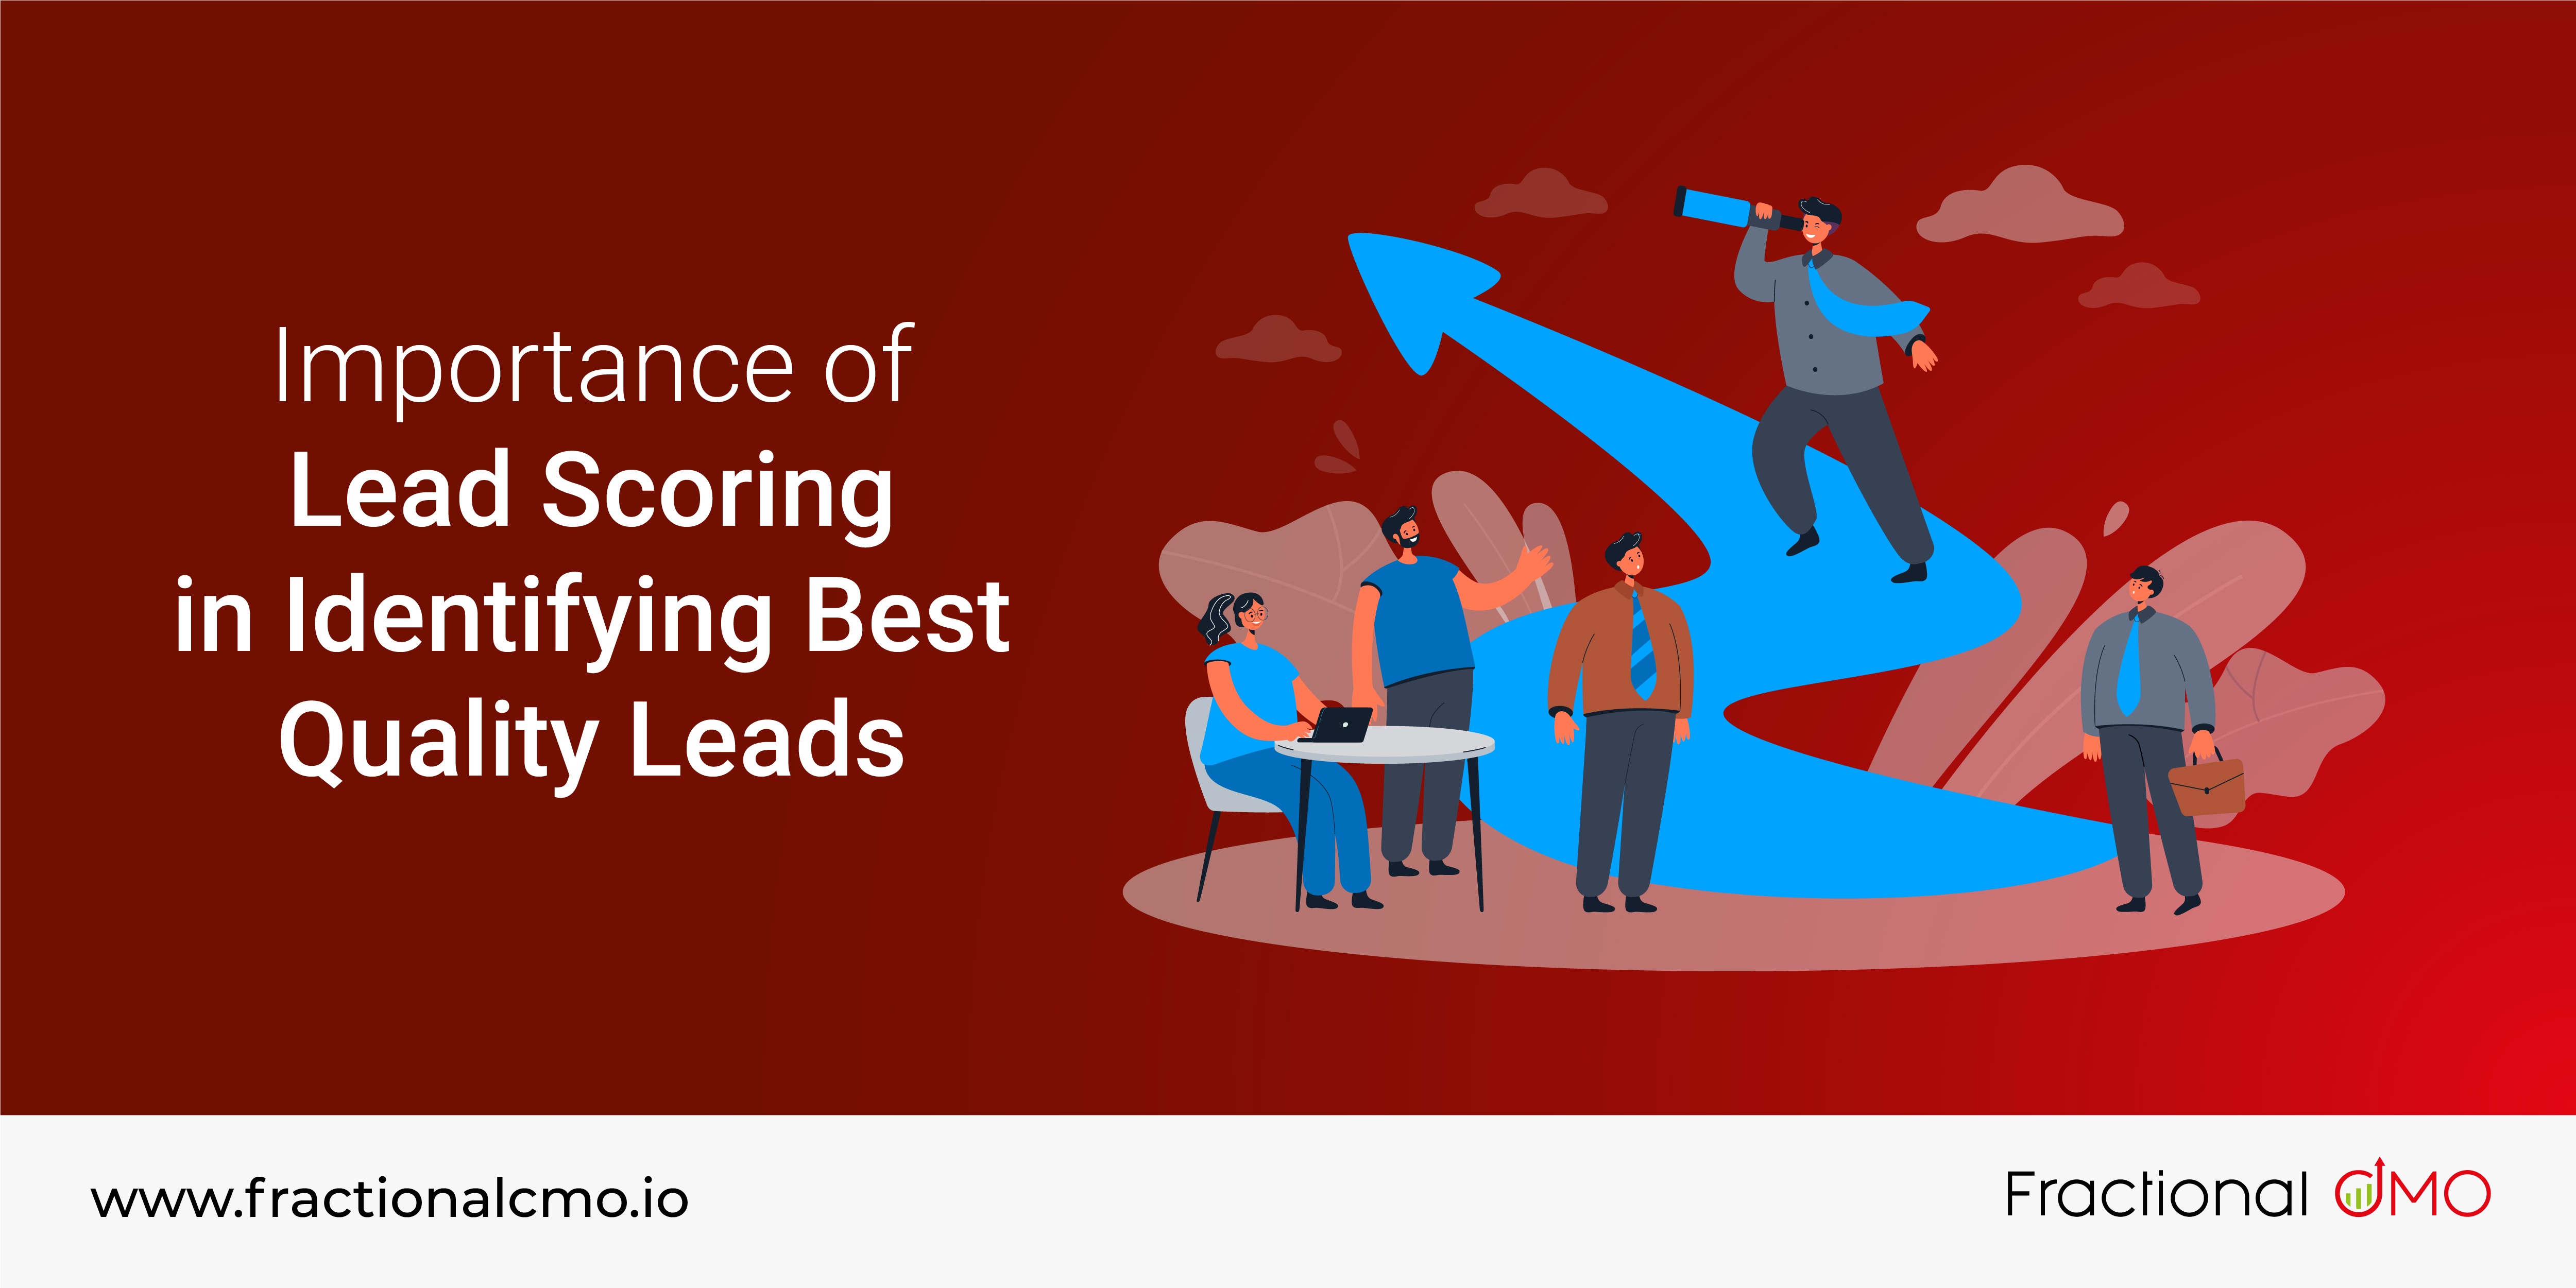 Importance of Lead Scoring in Identifying Best Quality Leads